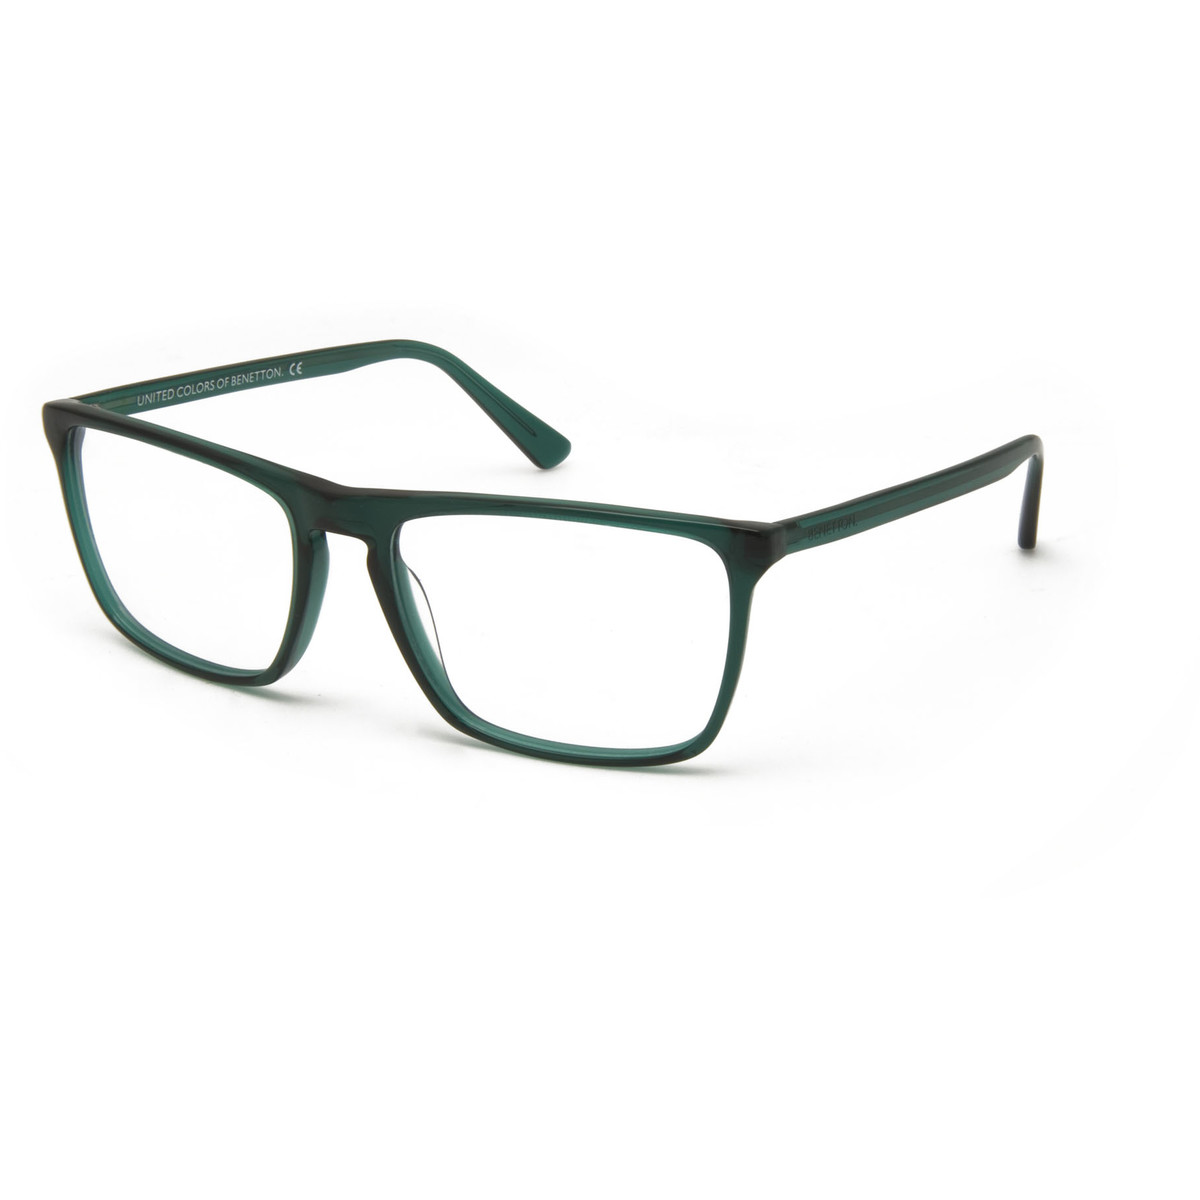 Rame ochelari vedere barbati UNITED COLORS OF BENETTON BN254V03 GREEN de la United Colors of Benetton